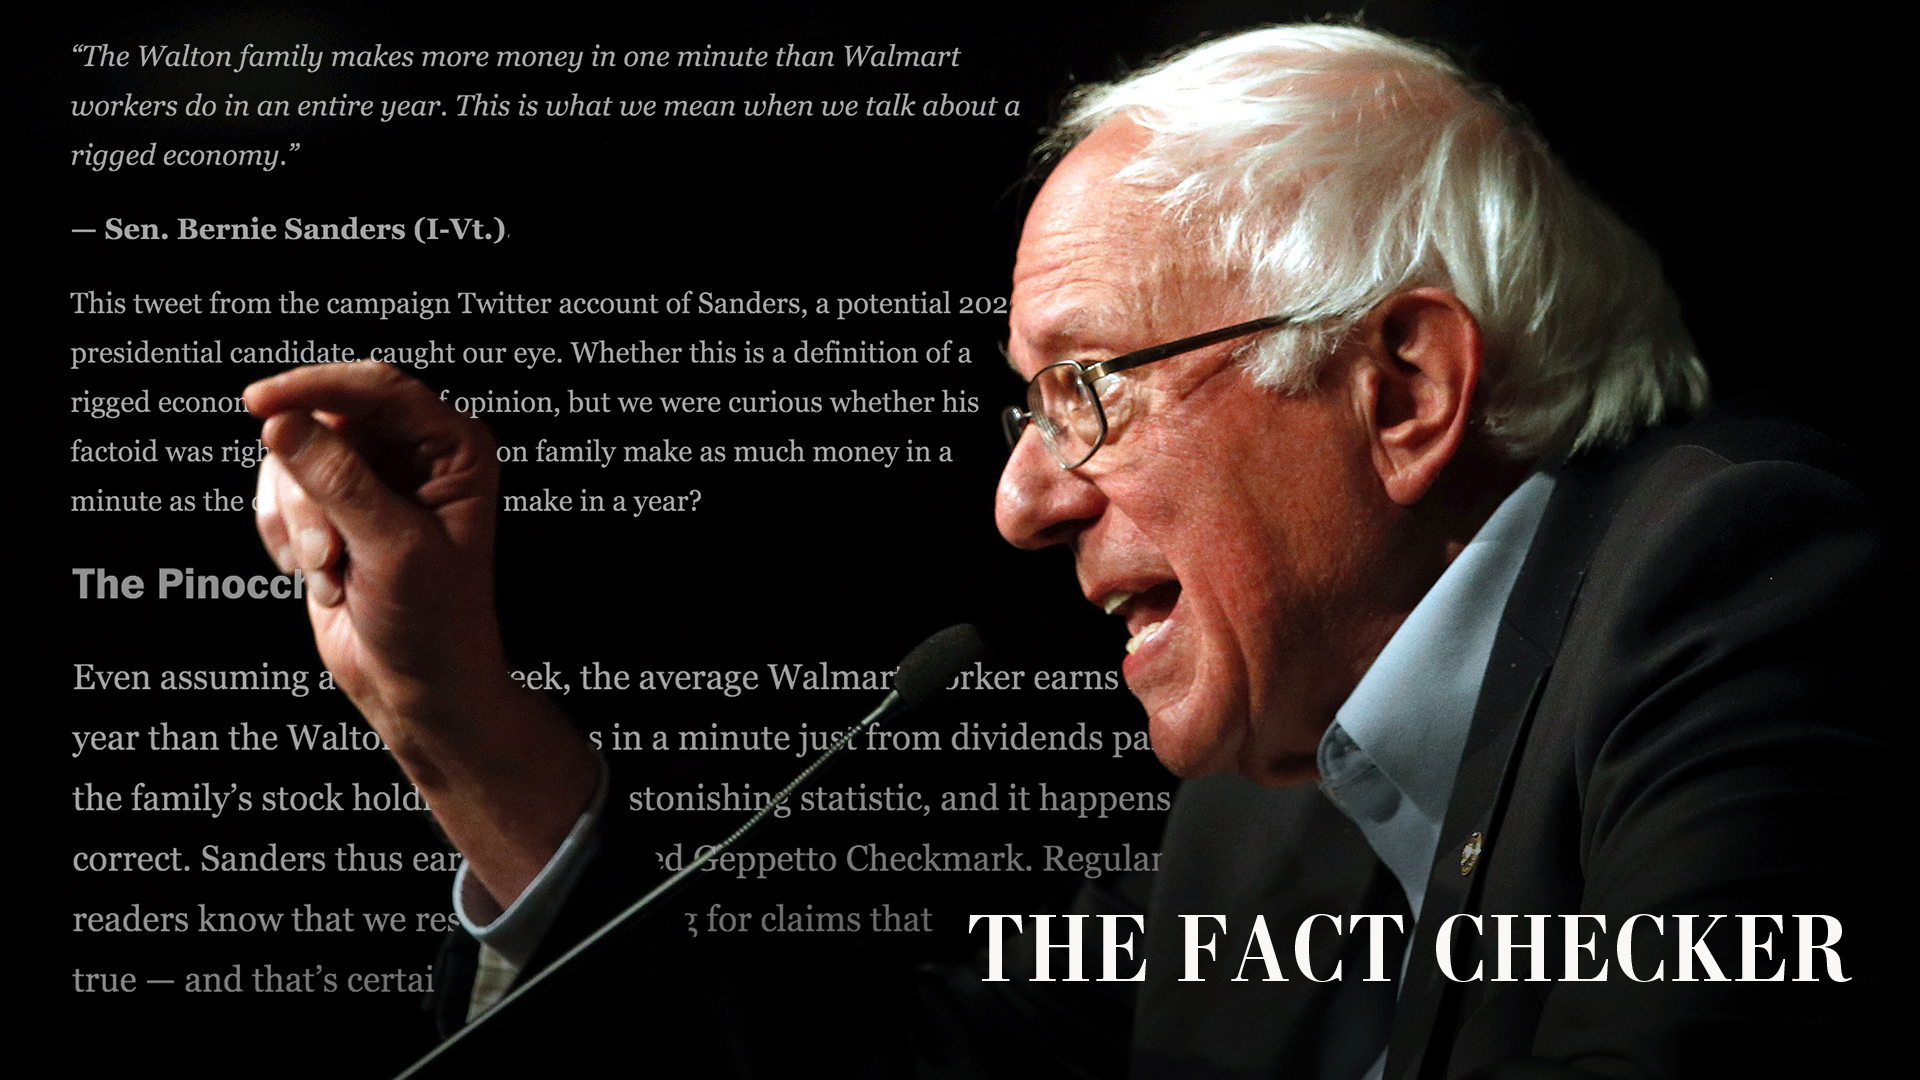 Does the Walton family earn more in a minute than Walmart workers do in a year?